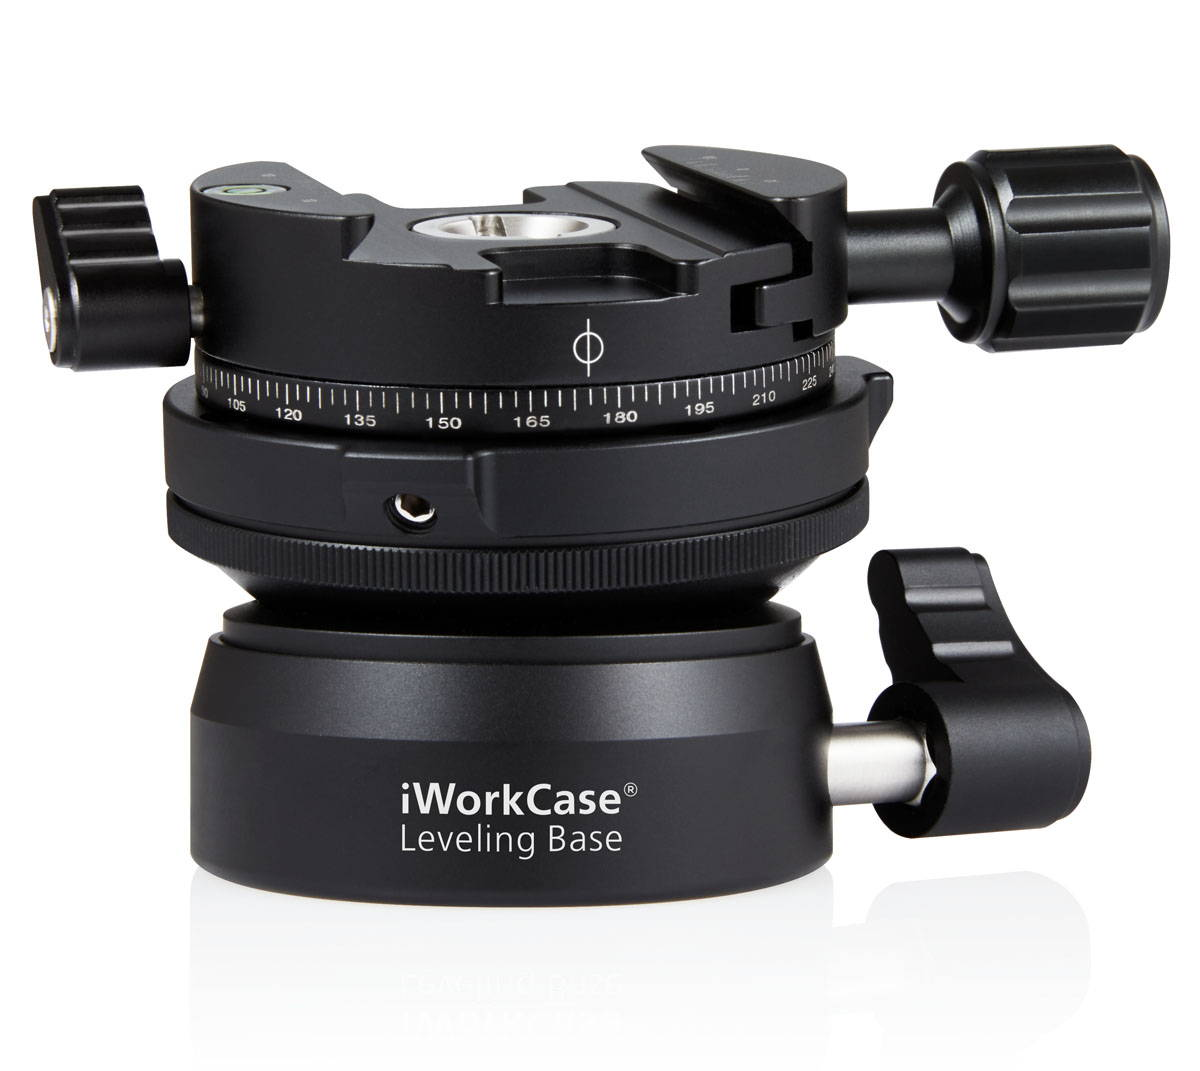 iworkcase leveling base product photo on white